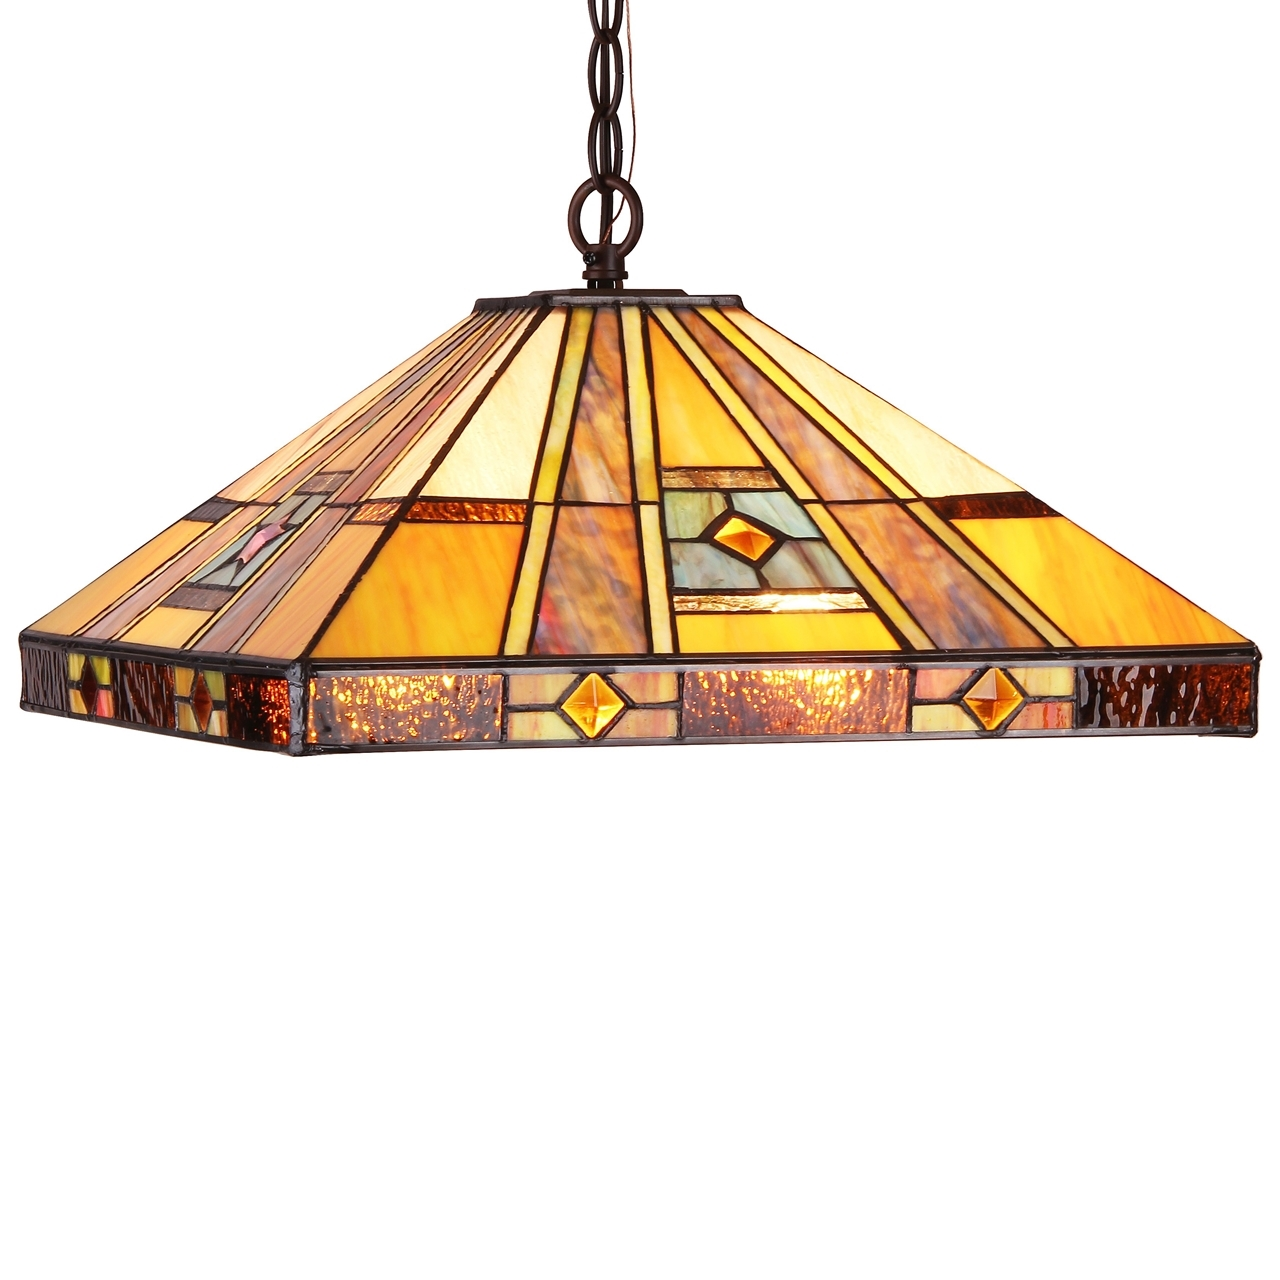 Chloe lighting ely tiffany style 2 light hanging pendant fixture